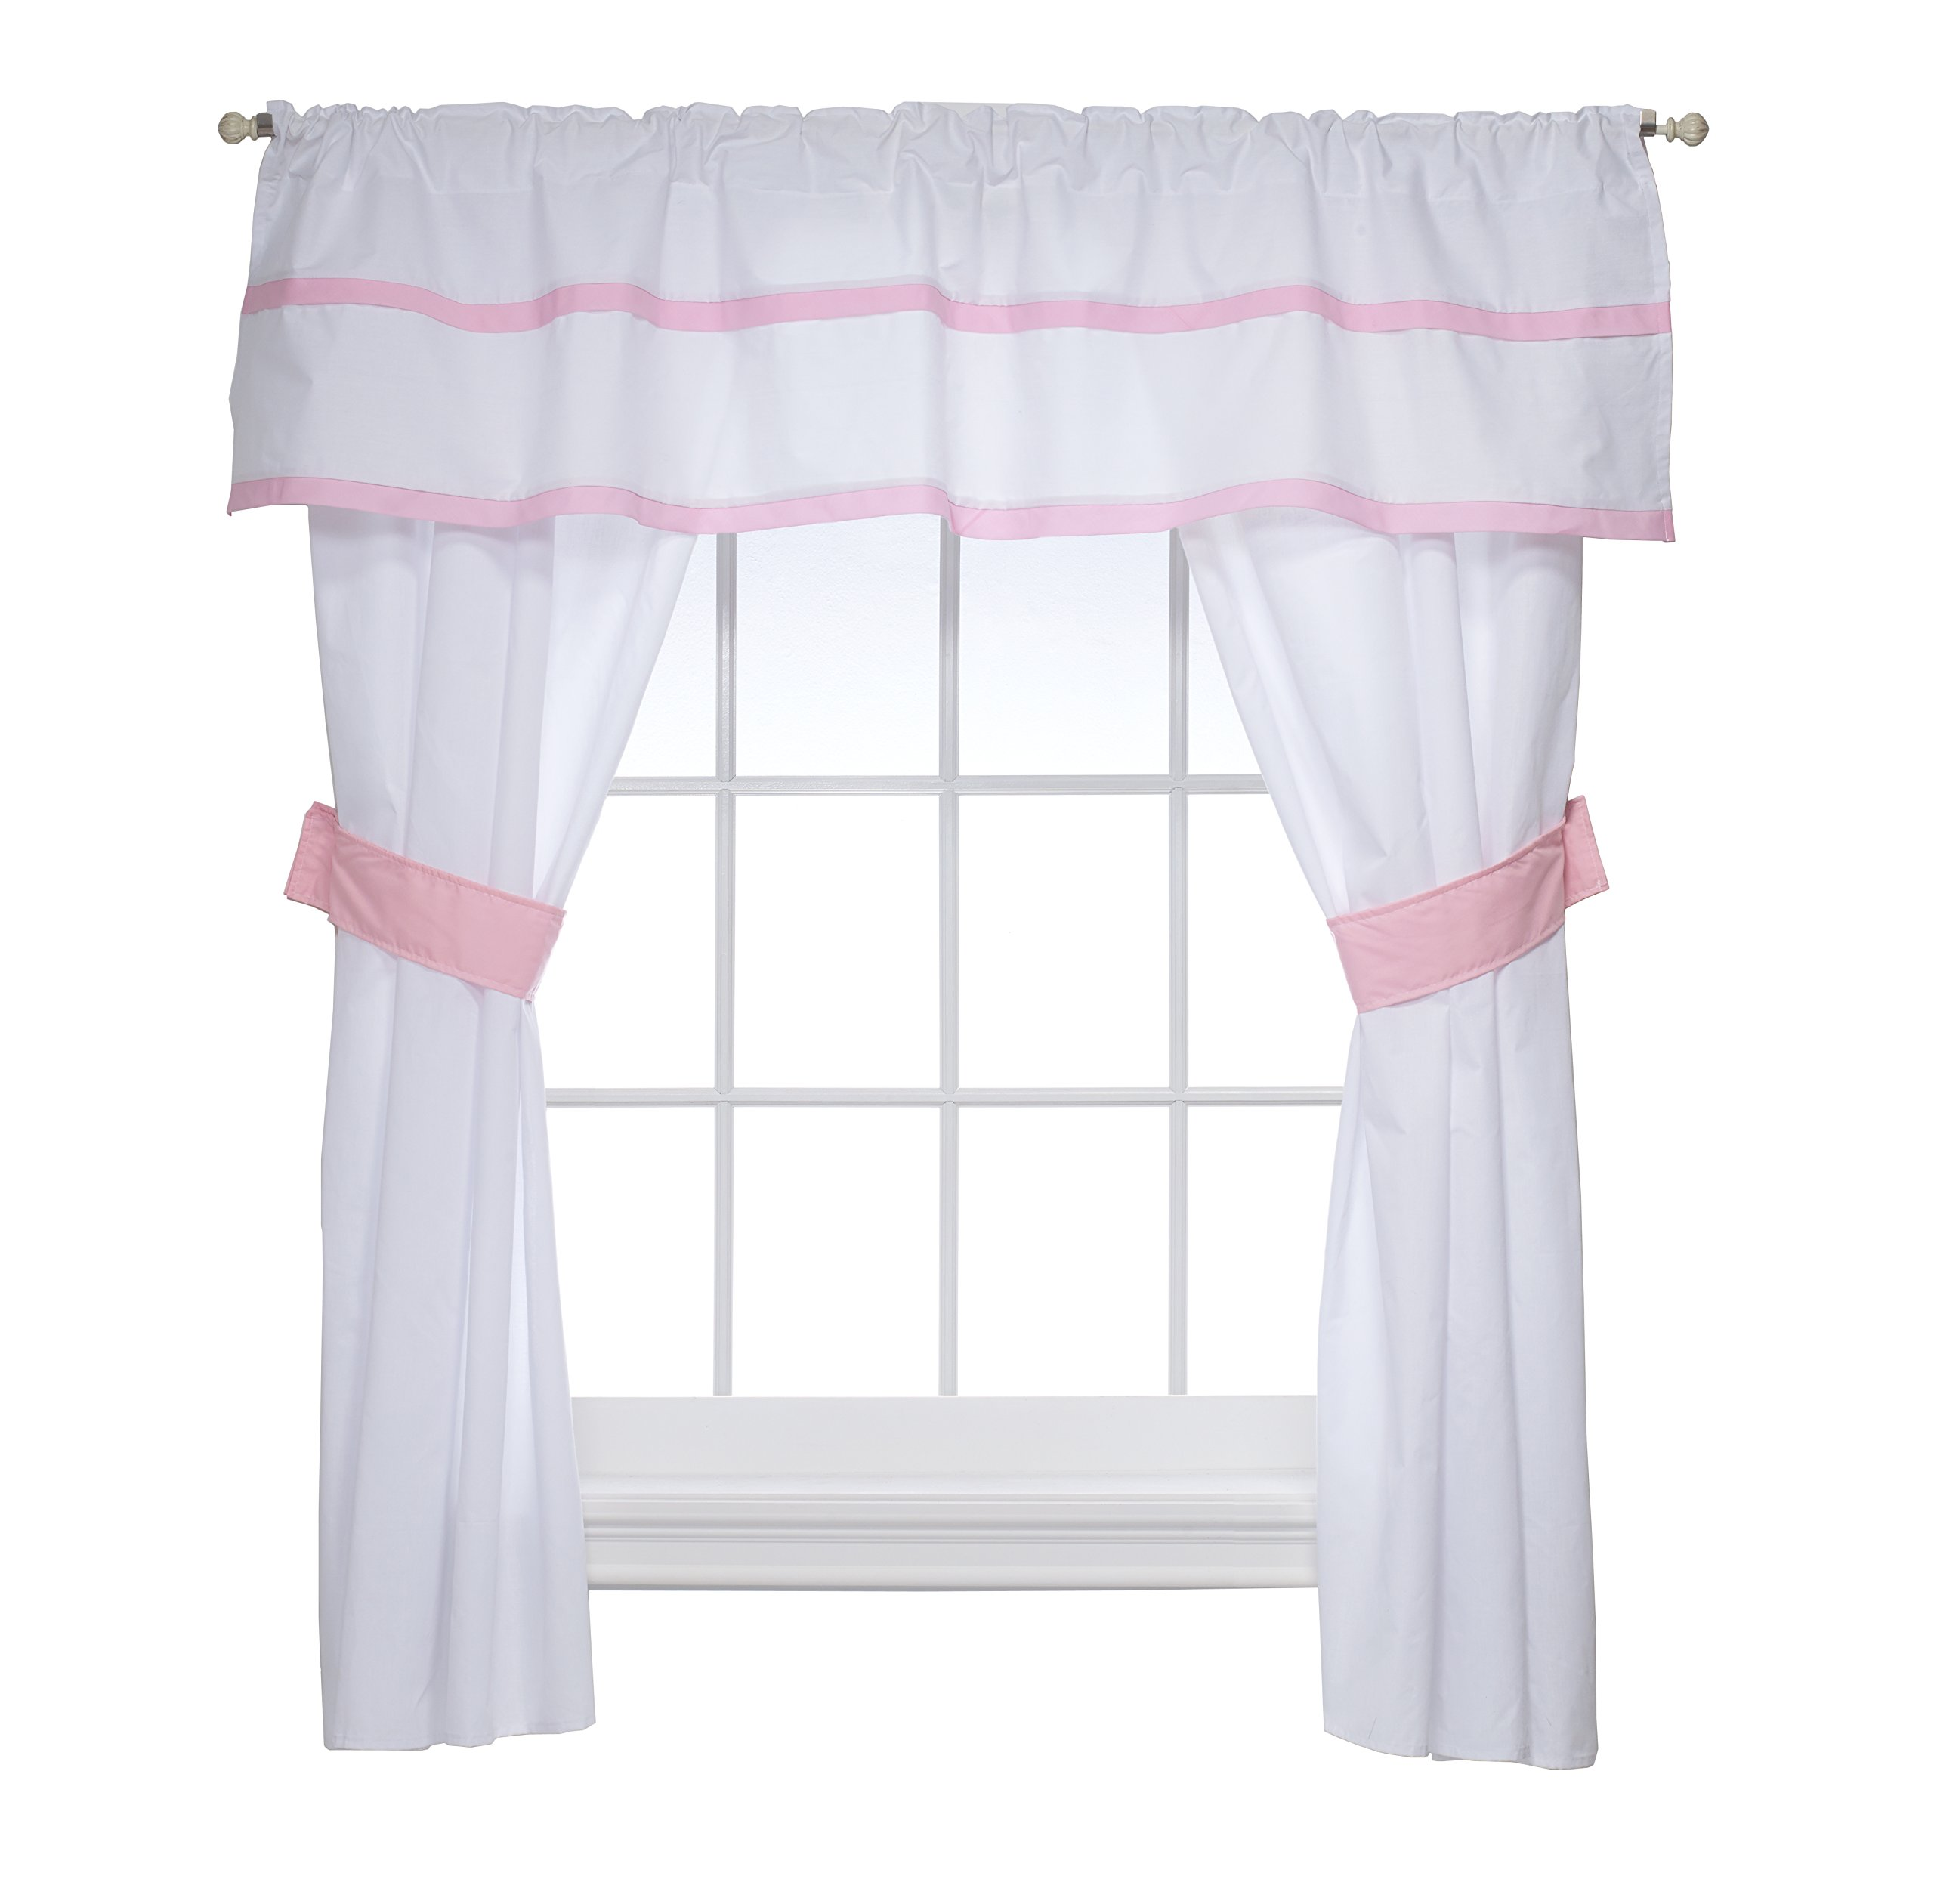 Baby Doll Medallion 5 Piece Window Valance and Curtain Set, Pink by Baby Doll